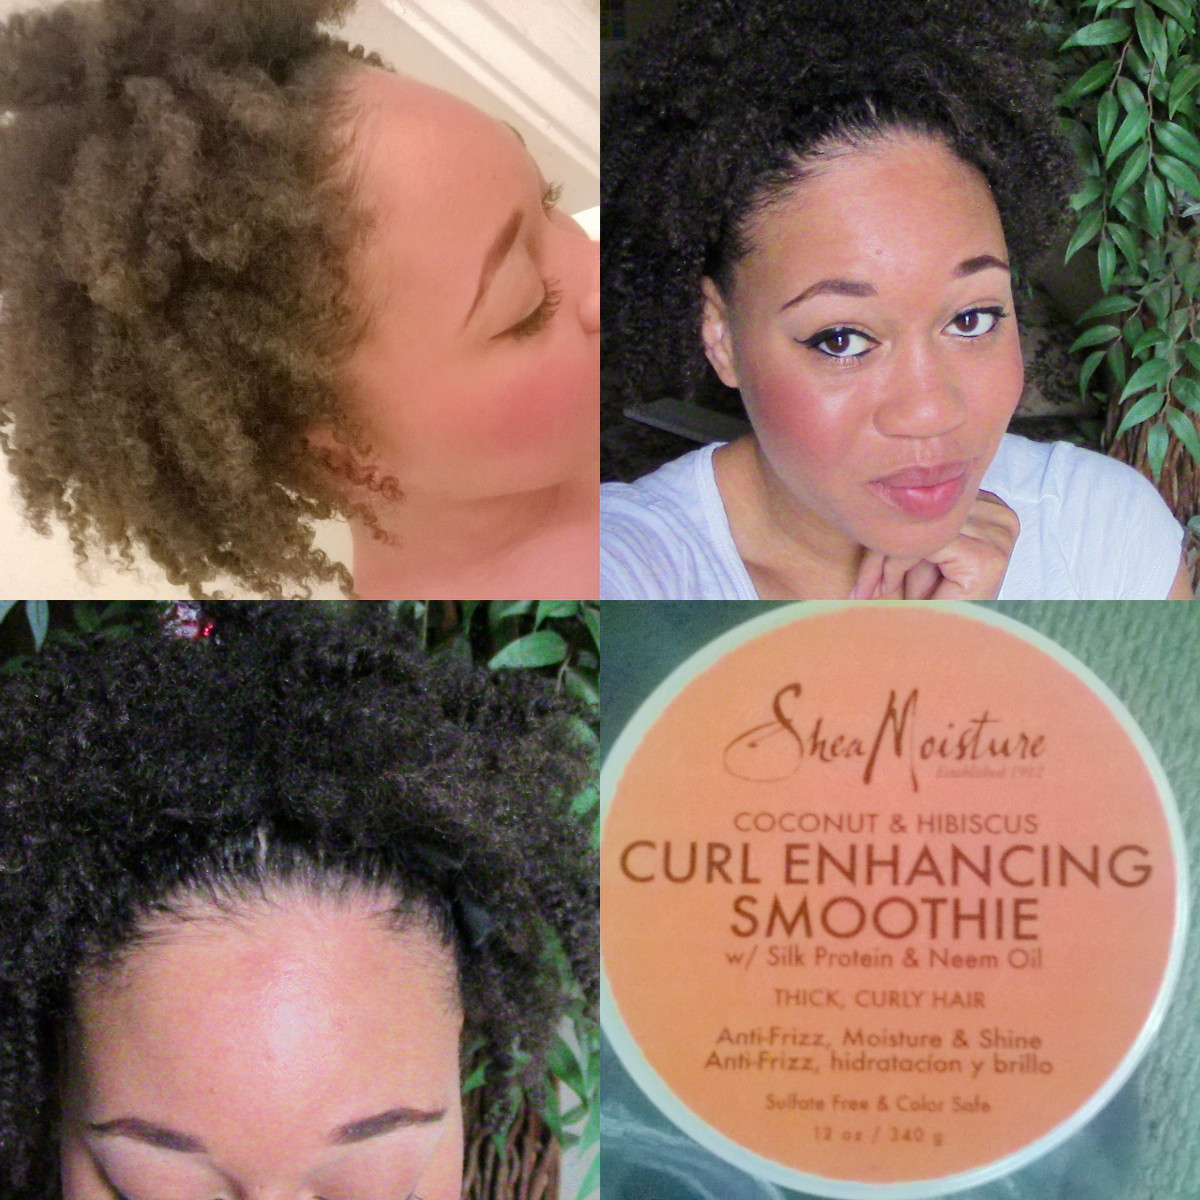 Twist Out Using Shea Moisture Curl Enhancing Smoothie Euniycemarii